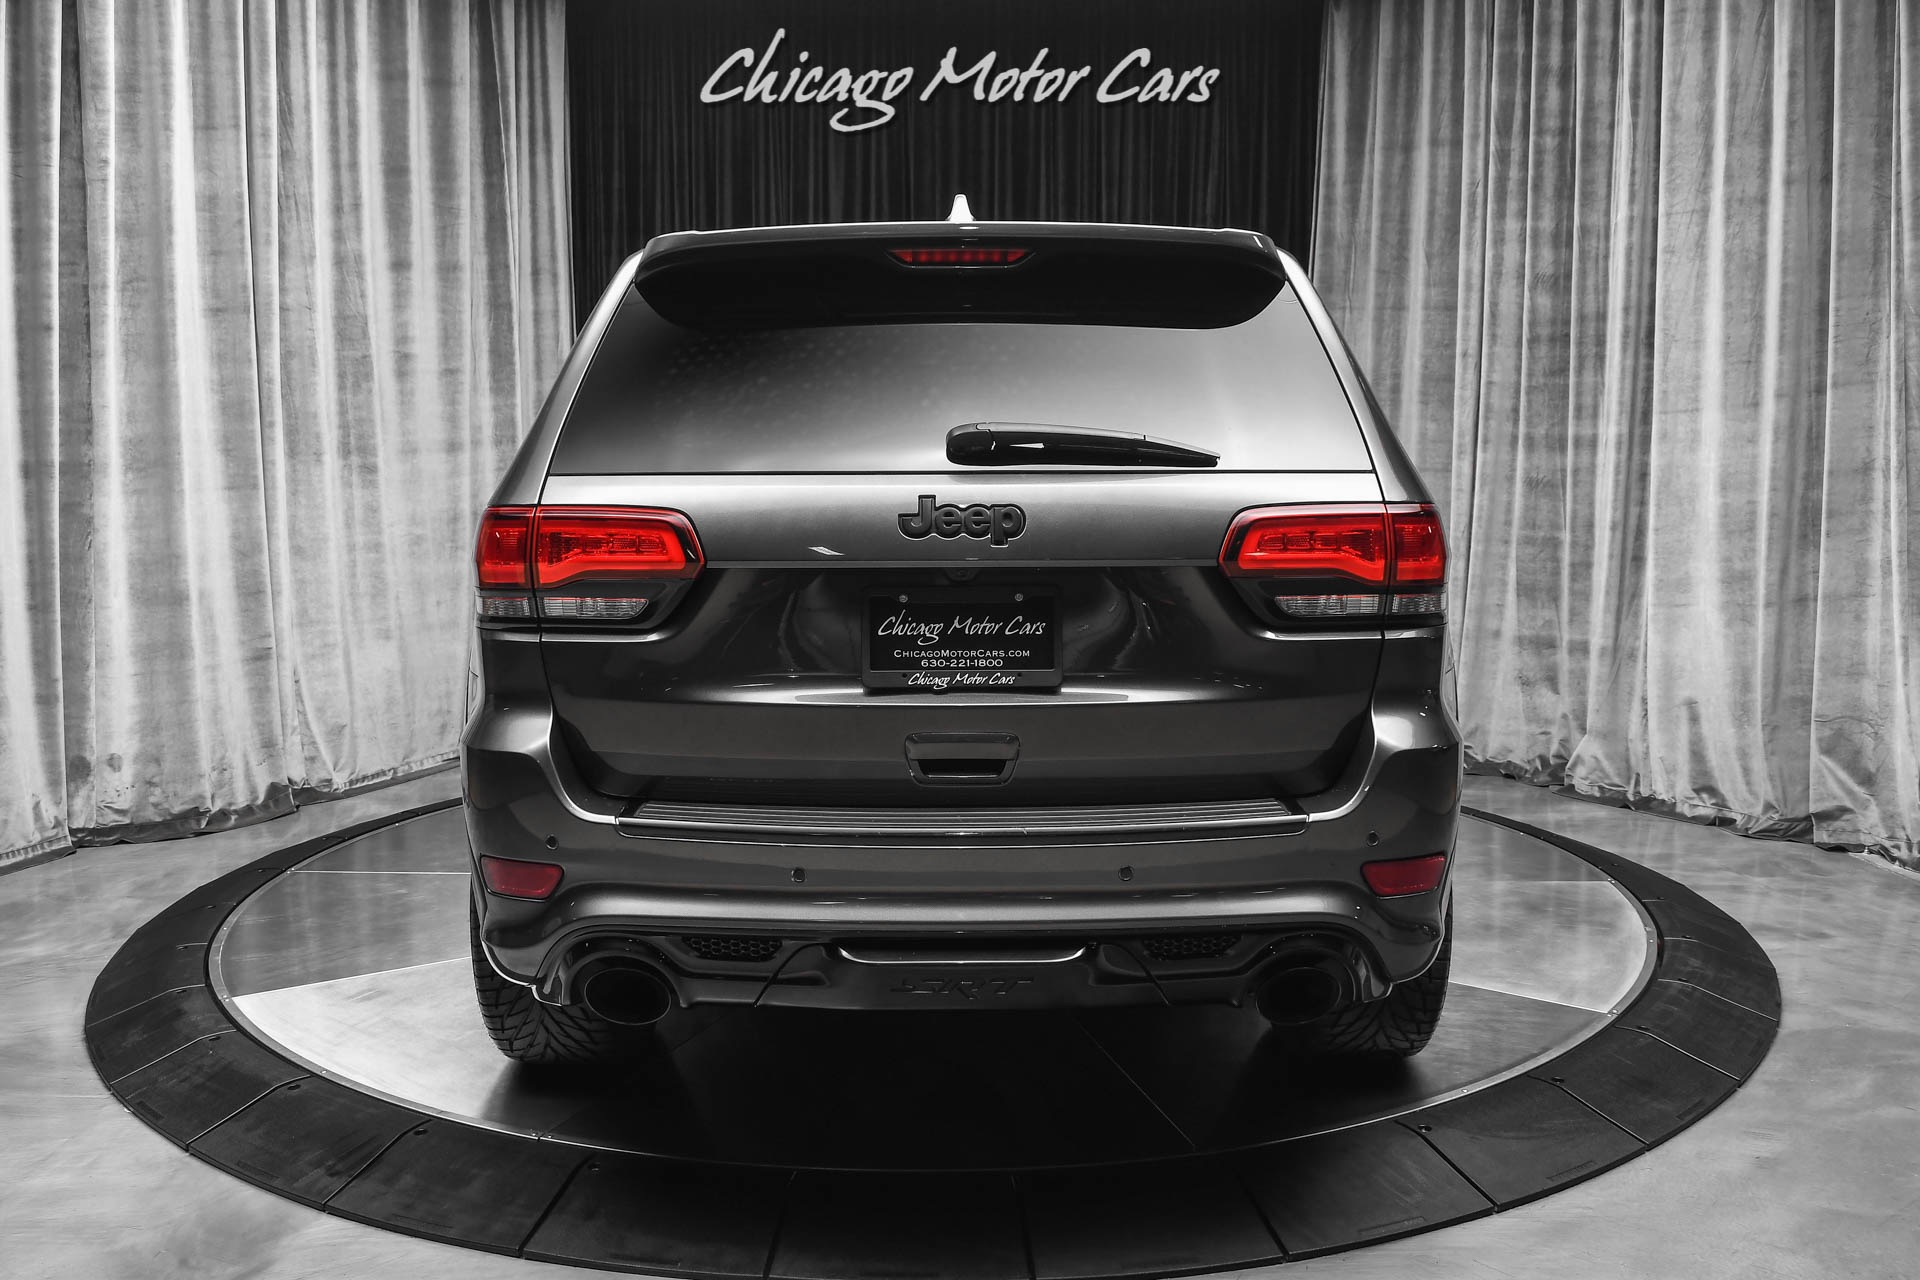 Used-2019-Jeep-Grand-Cherokee-SRT-SUV-Only-3500-Miles-BREMBO-BRAKES